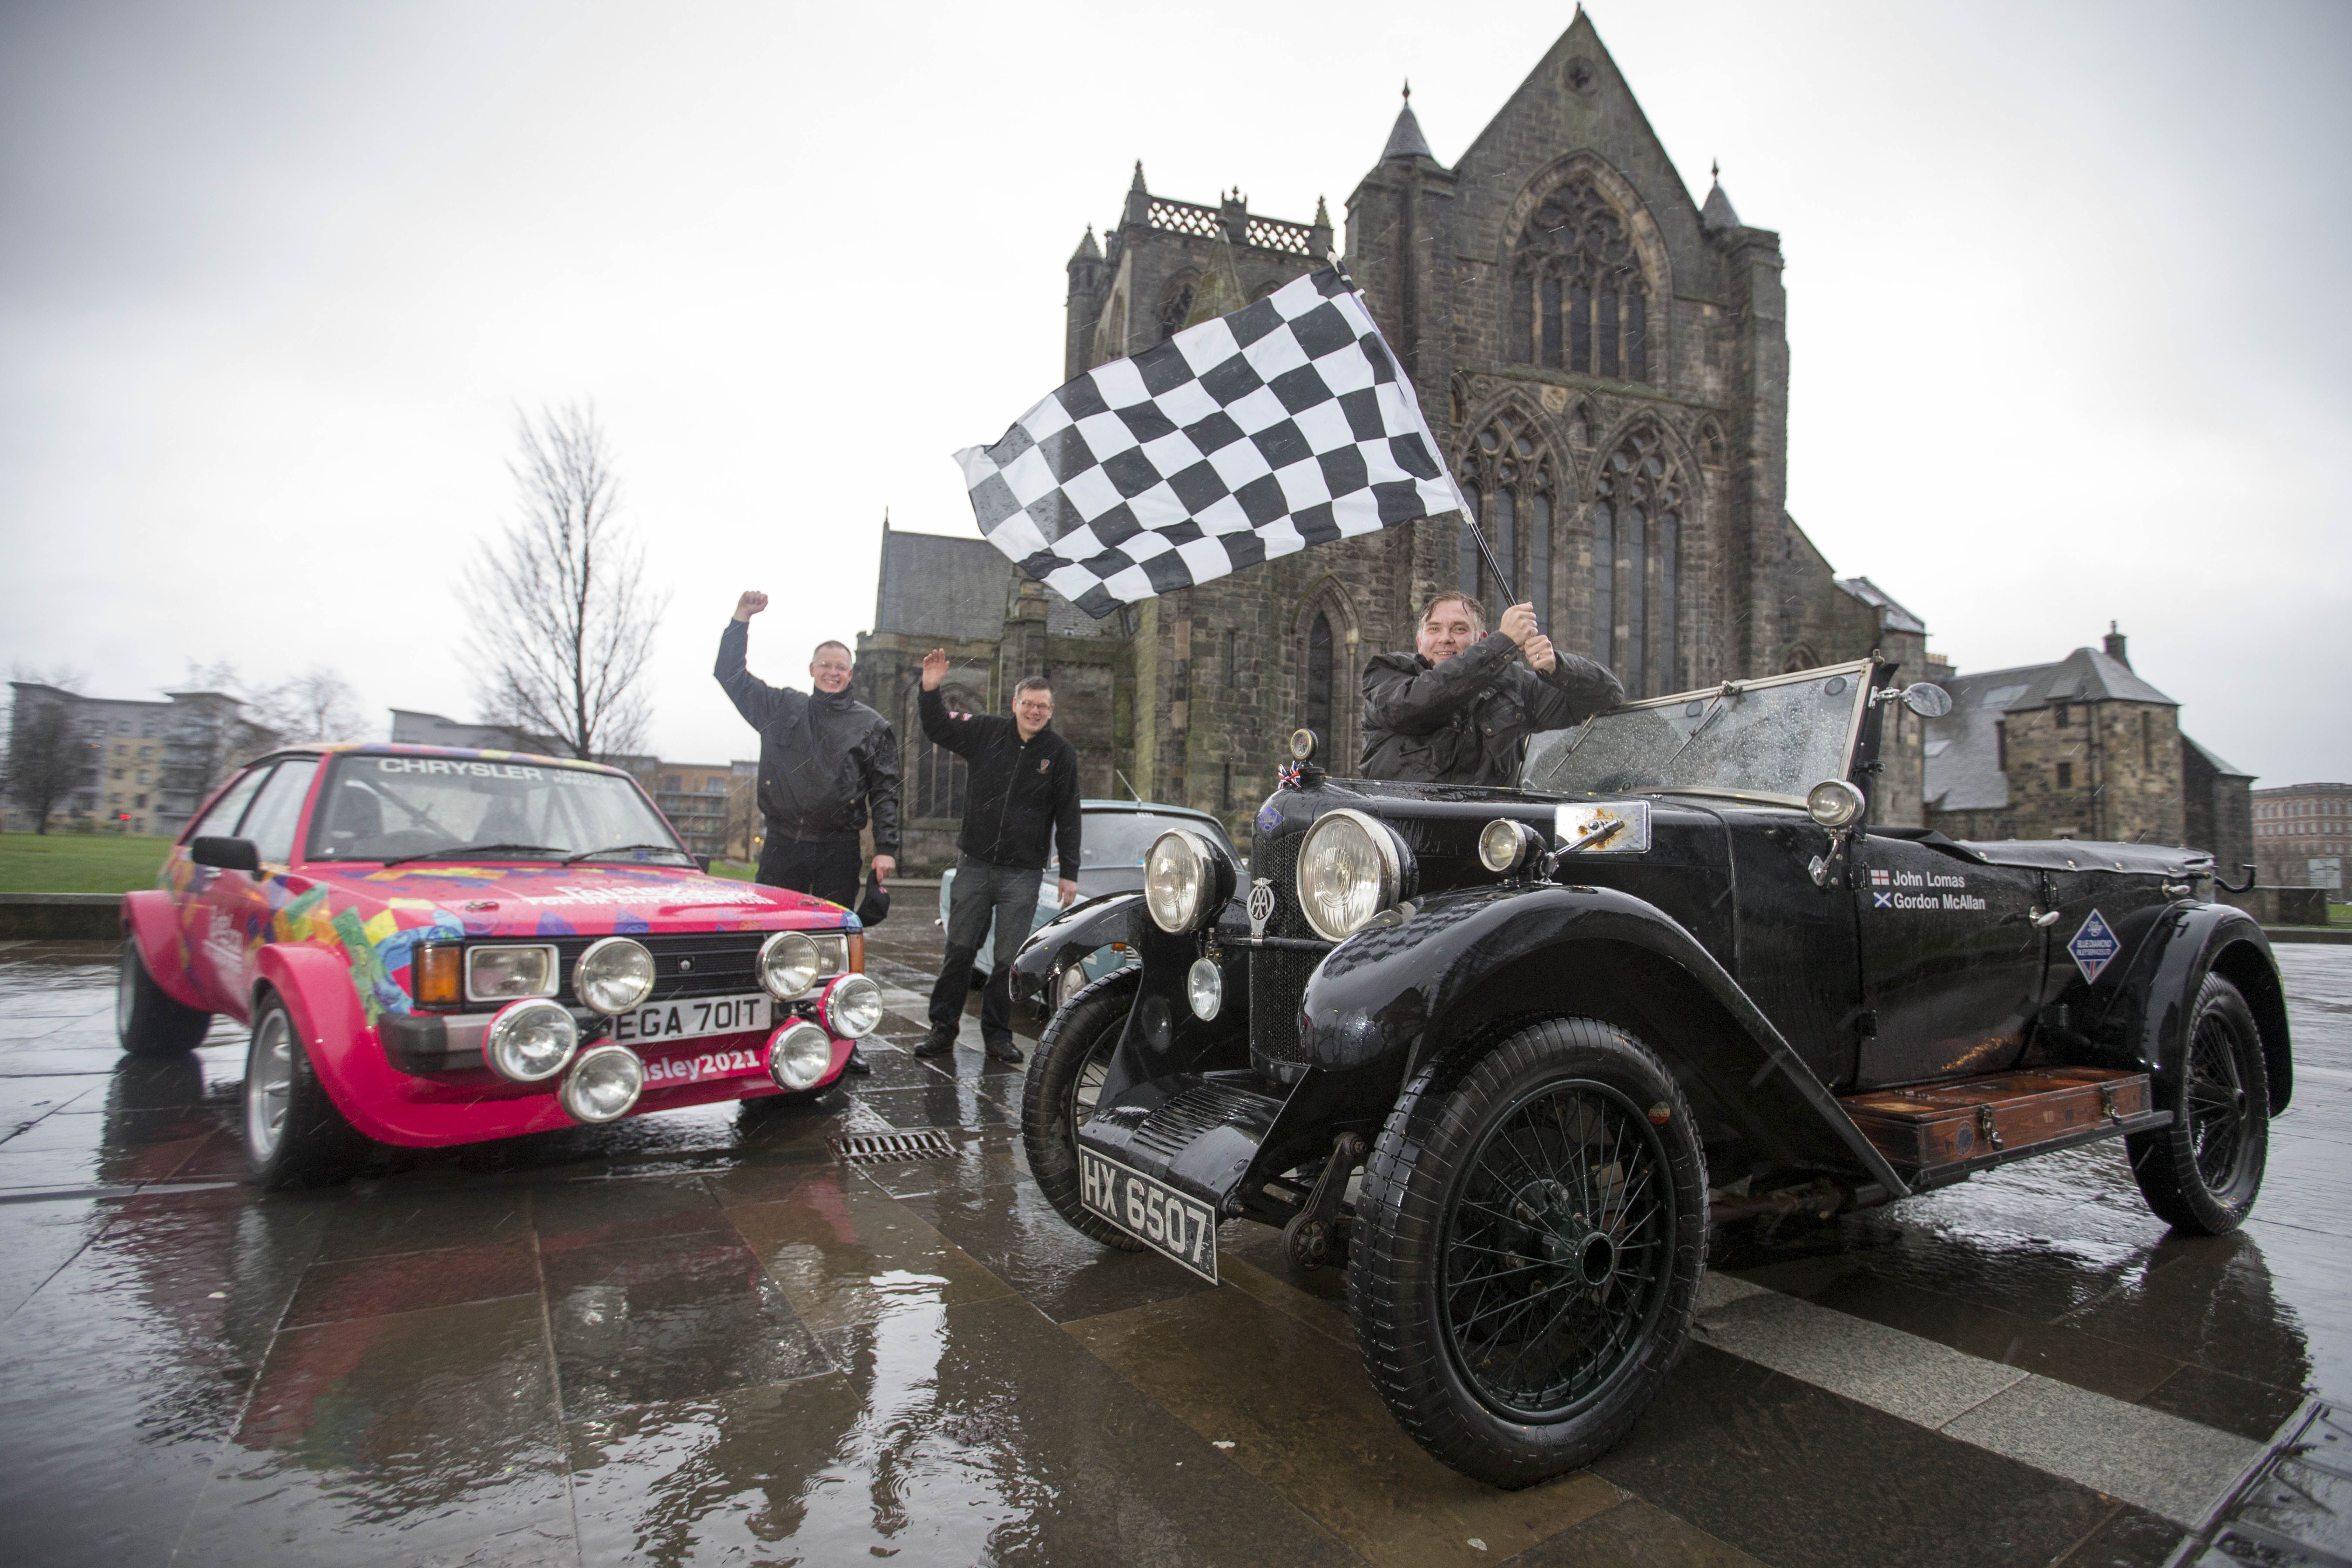 26/01/16...PAISLEY.Ready for the off, vintage cars all set for the annual Monte Carlo Rally which sets off from Paisley Town Centre on Wednesday... Competitors Jim Meggat, John Lomas and Ranald White